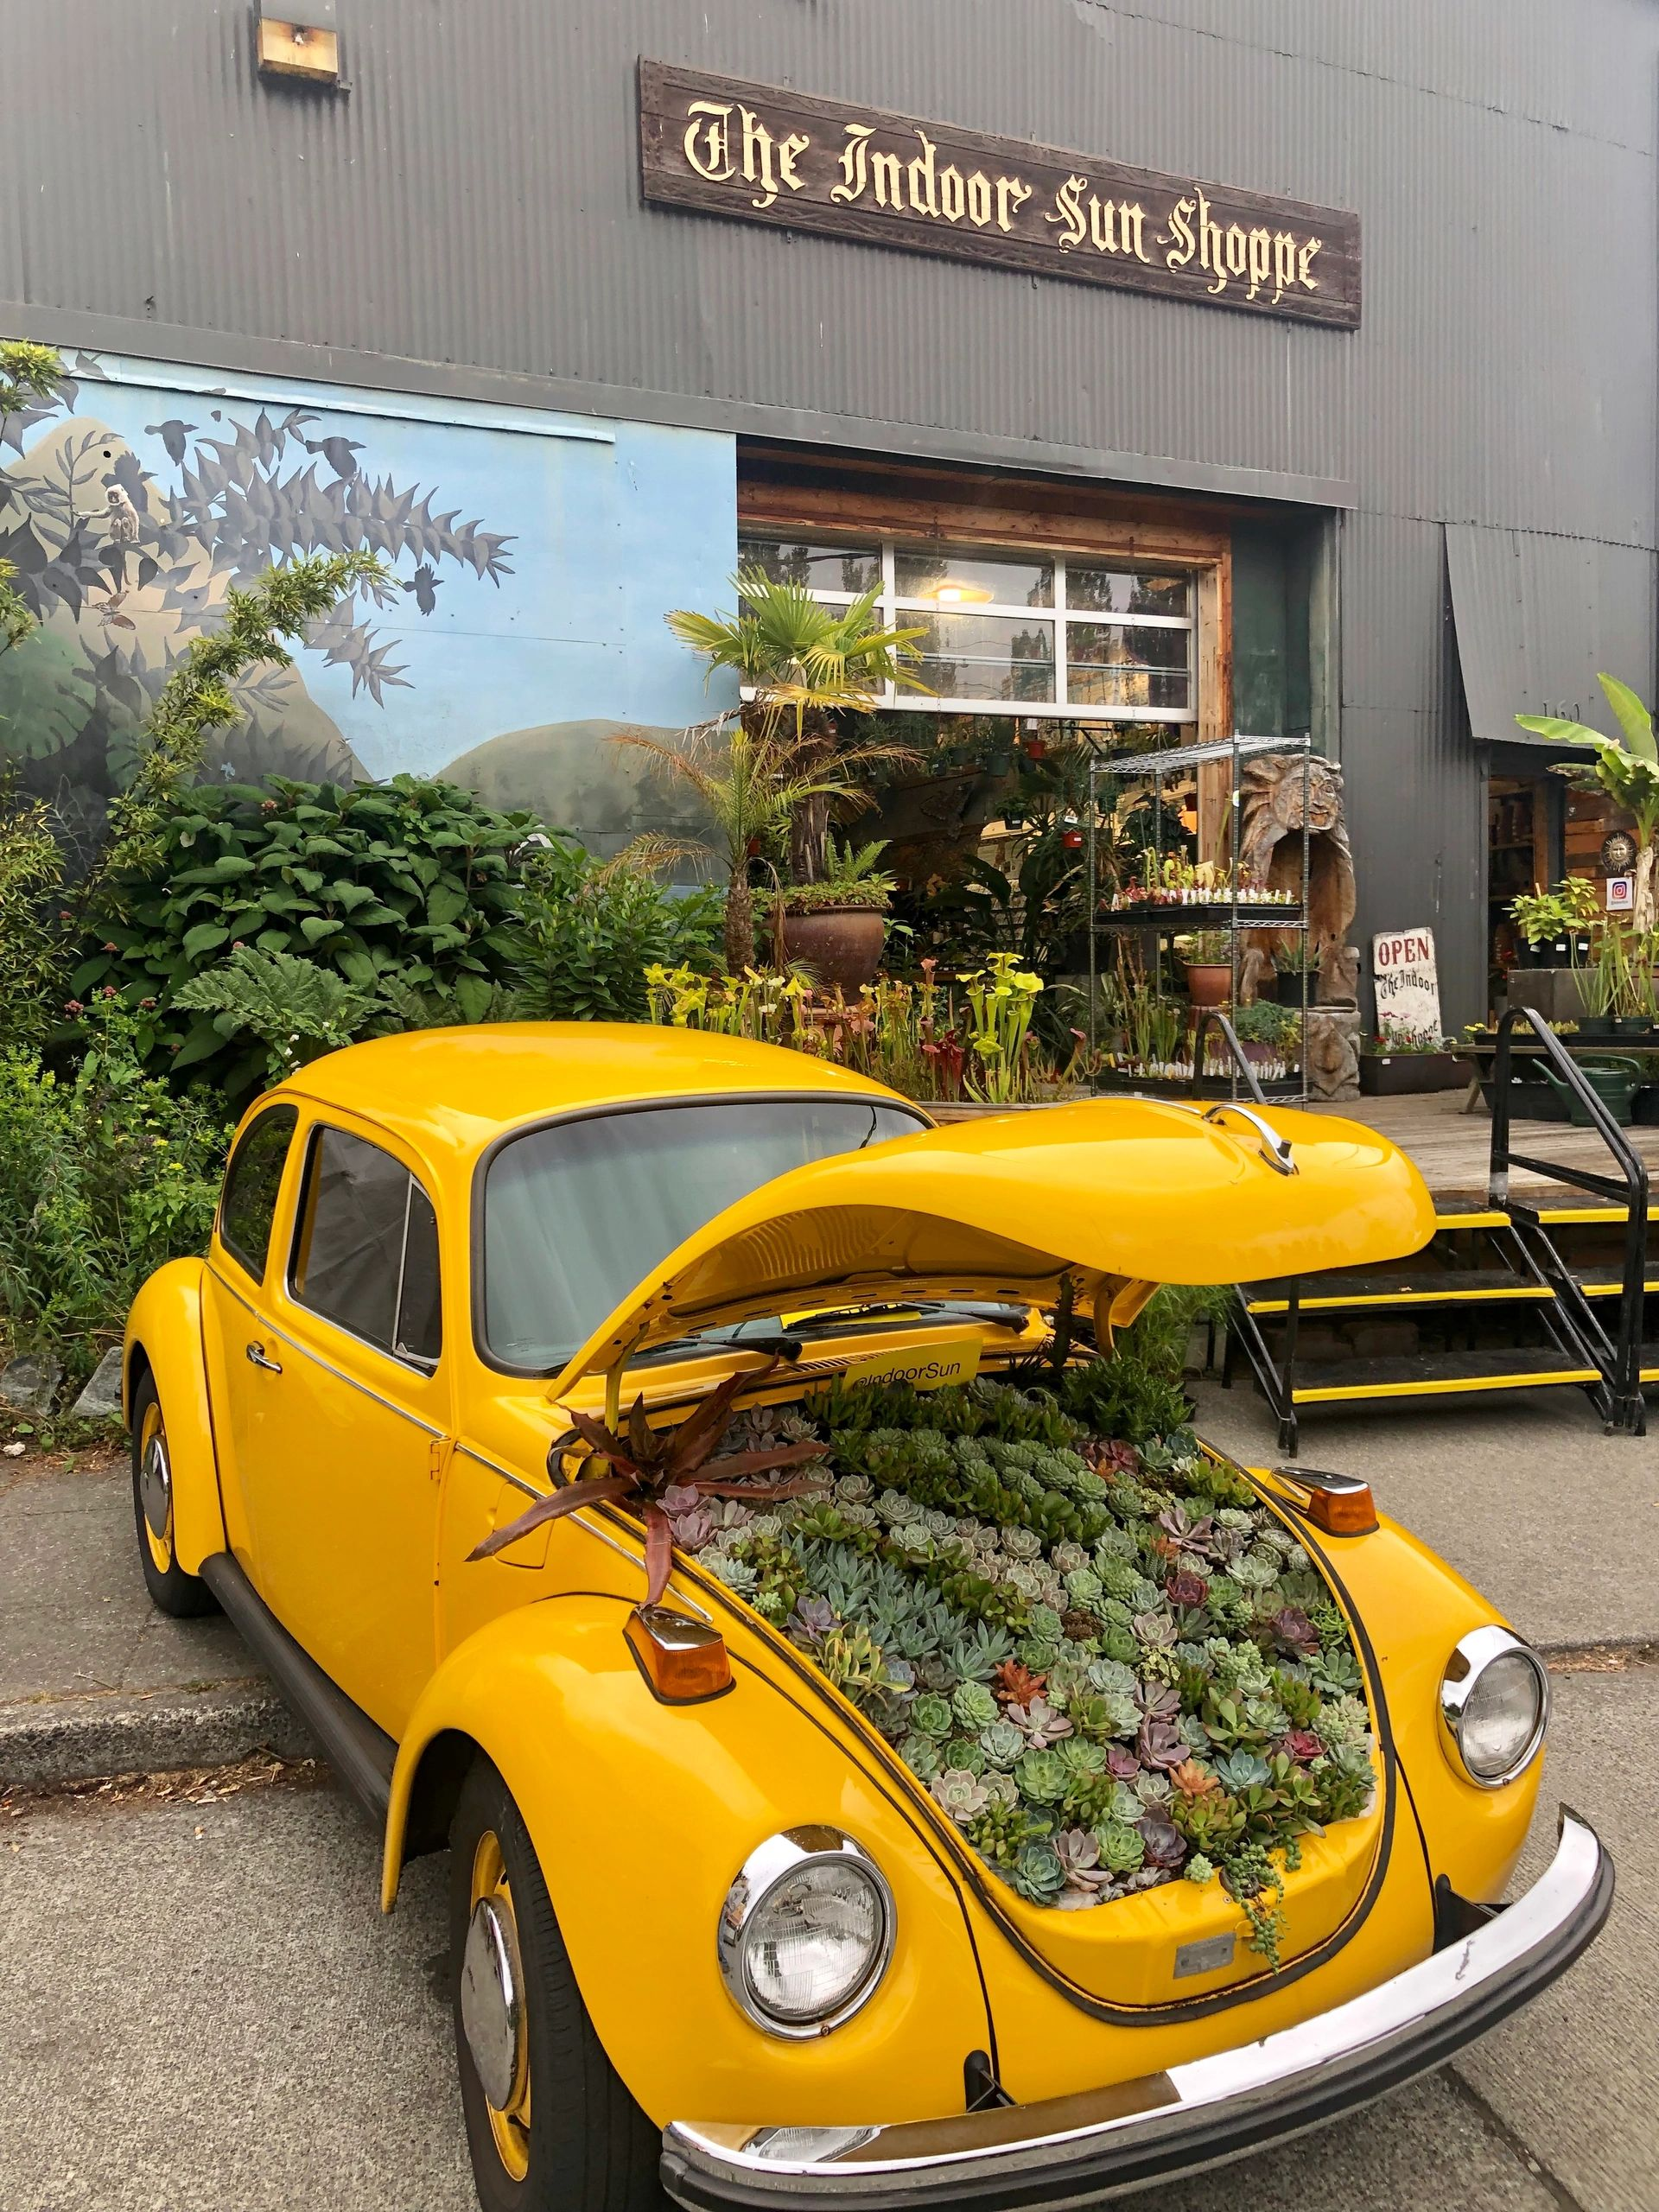 The store front, a deck of carnivorous plants, & a Volkswagen beetle with succulents in the hood.